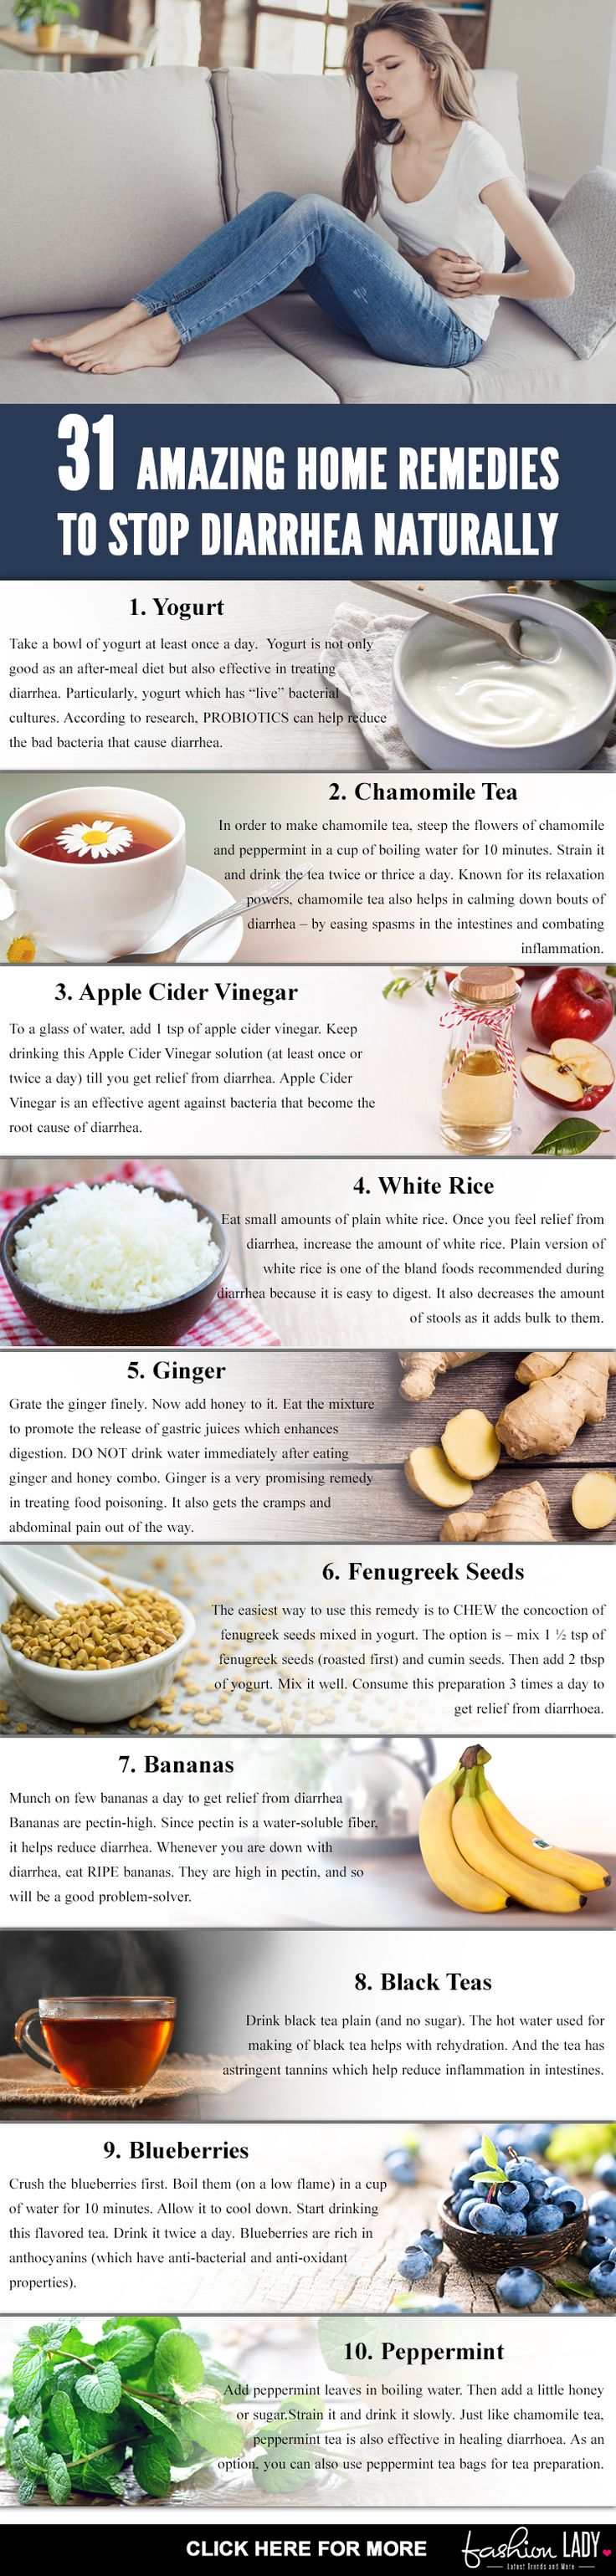 The Best Stop Diarrhea Ideas On Pinterest Diarrhea Remedies - How to stop diarrhea quickly by natural home remedies